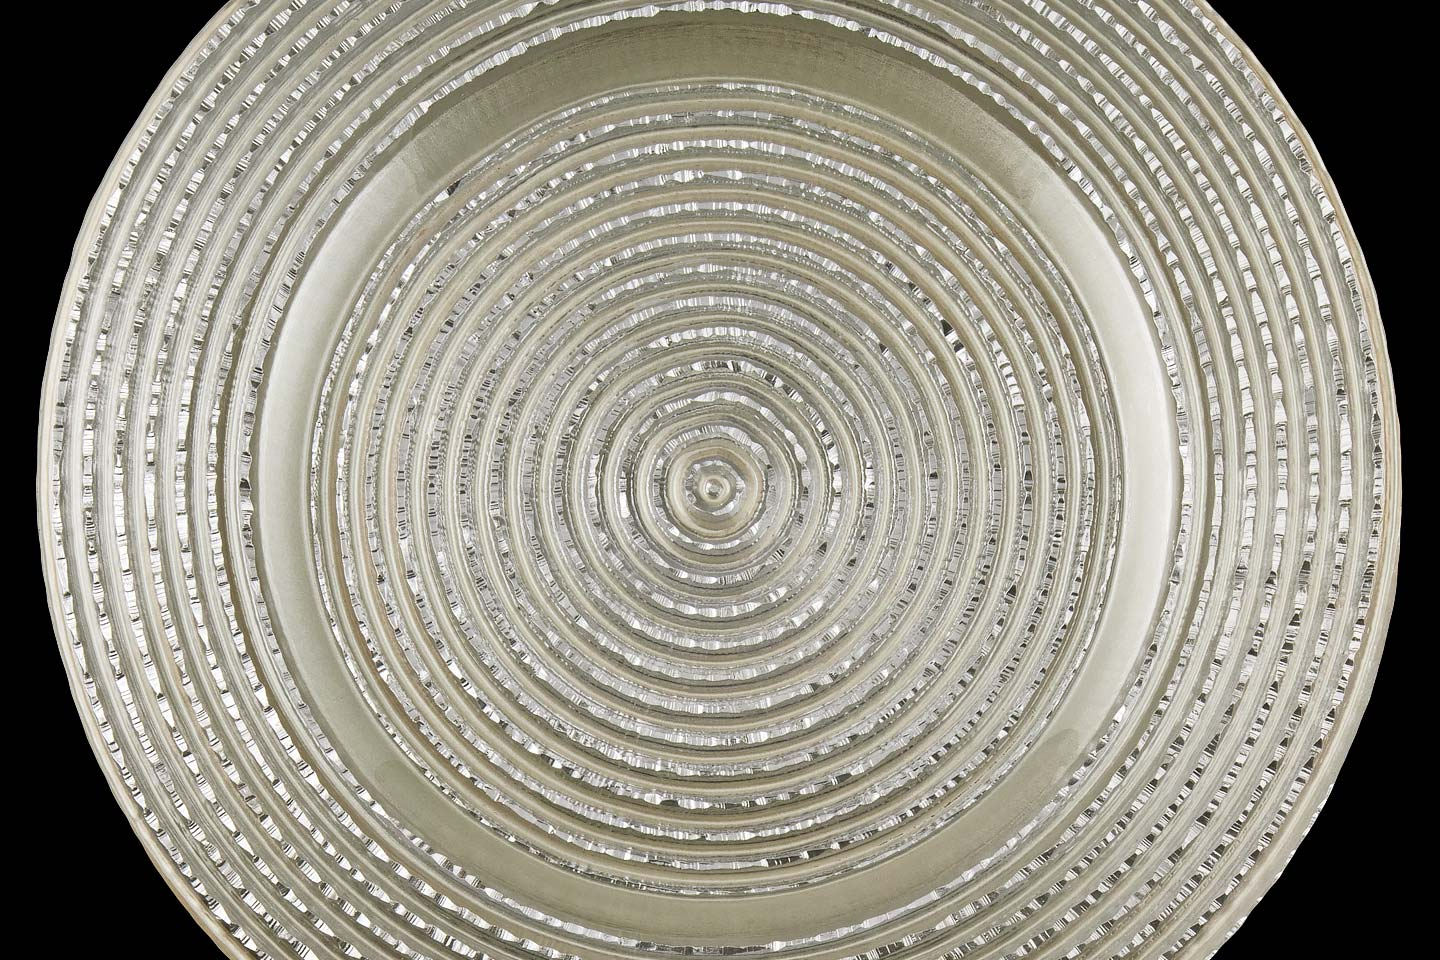 the silver pearl starlight charger plate from mandarin orange trading company, photographed by Jacob Rosenfeld